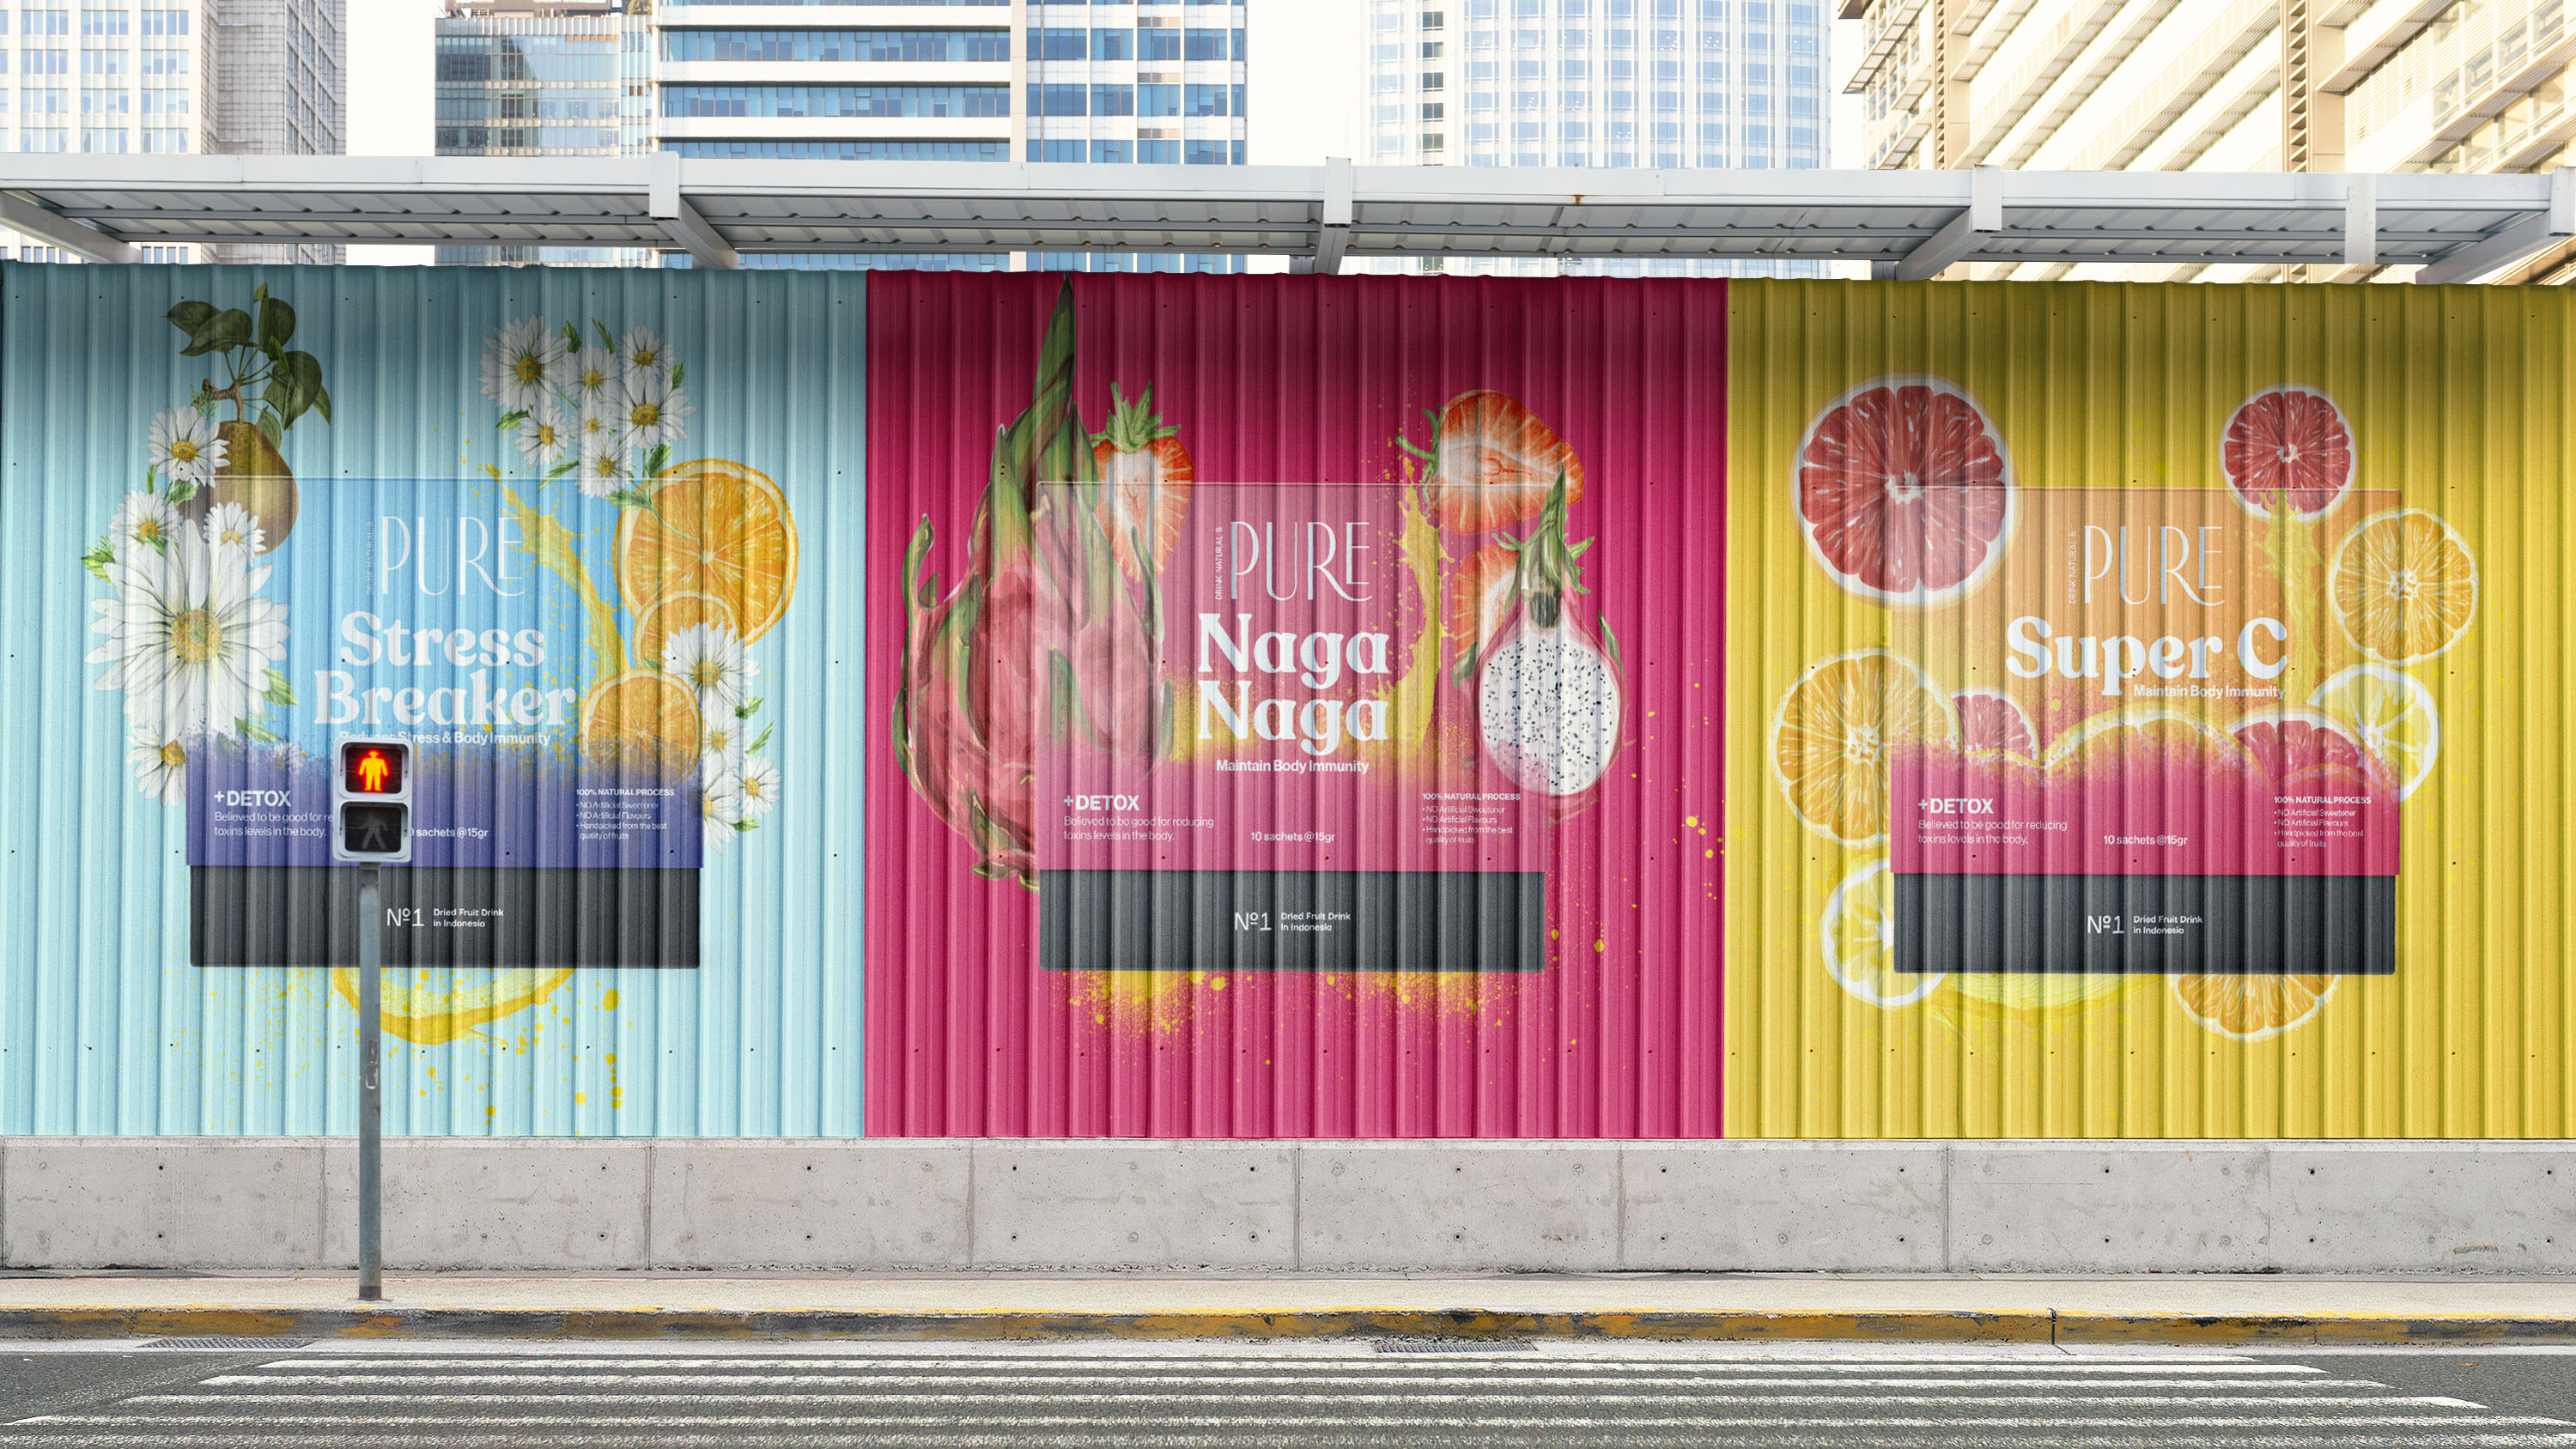 Pure Dried Fruits Packaging Design Range Created by Widarto Impact